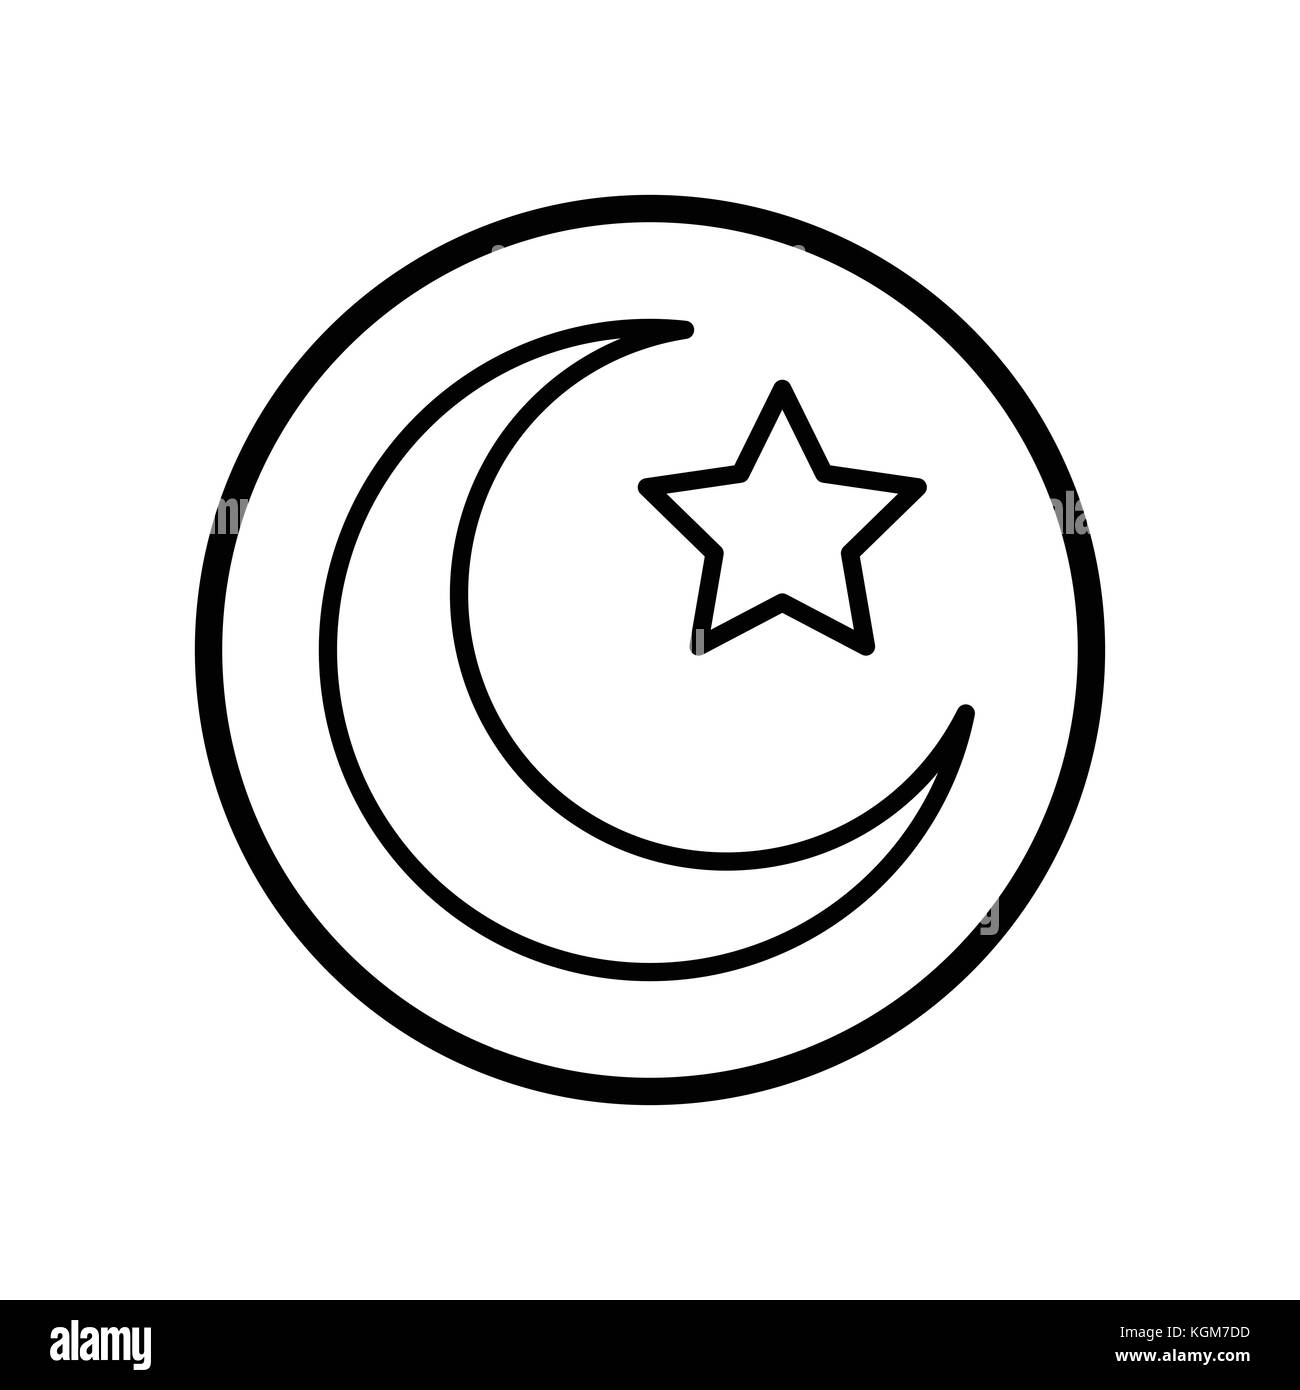 Islamic Half Moon Stock Photos Islamic Half Moon Stock Images Alamy